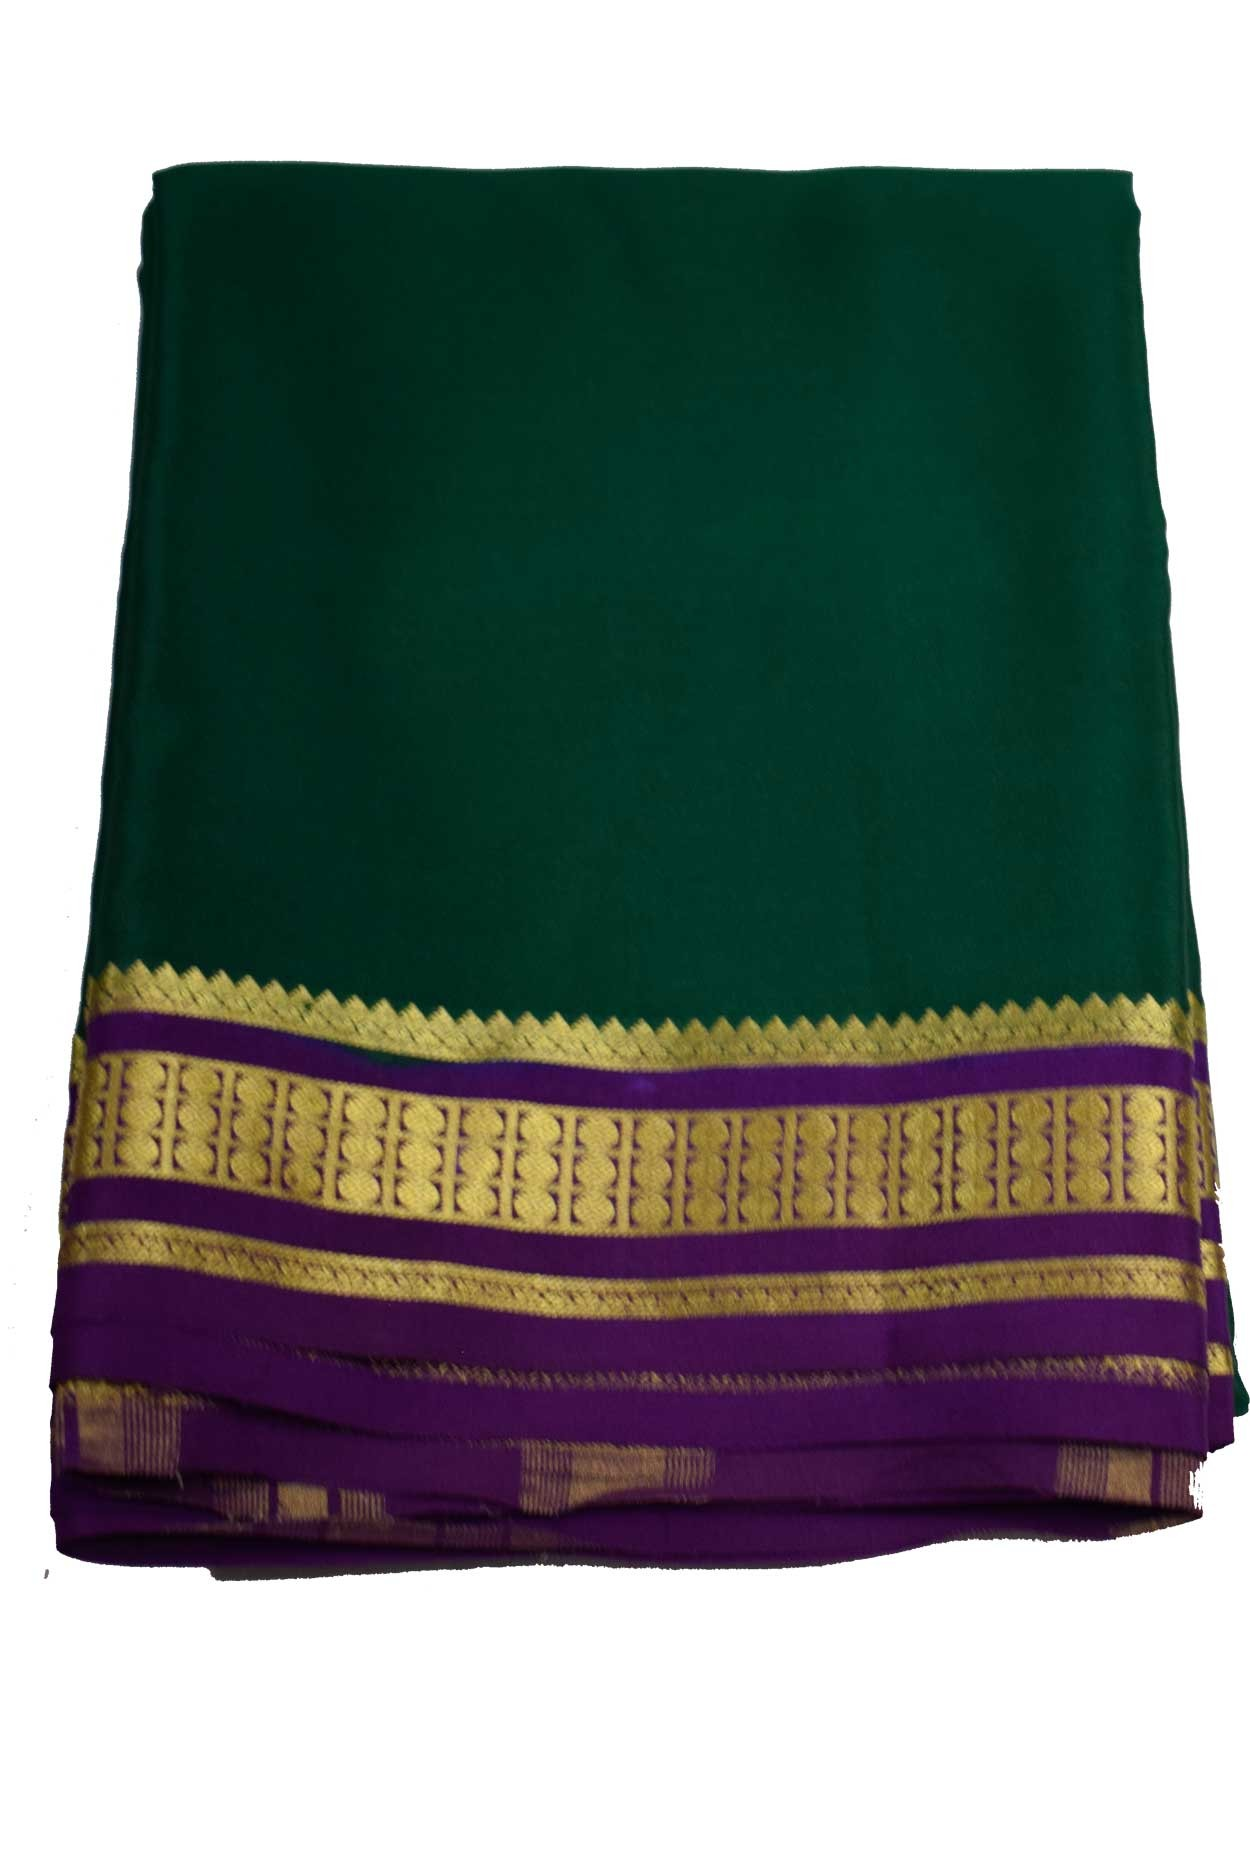 100% Pure Crape Mysore Traditional Silk Saree sc-11-bottle green meganta